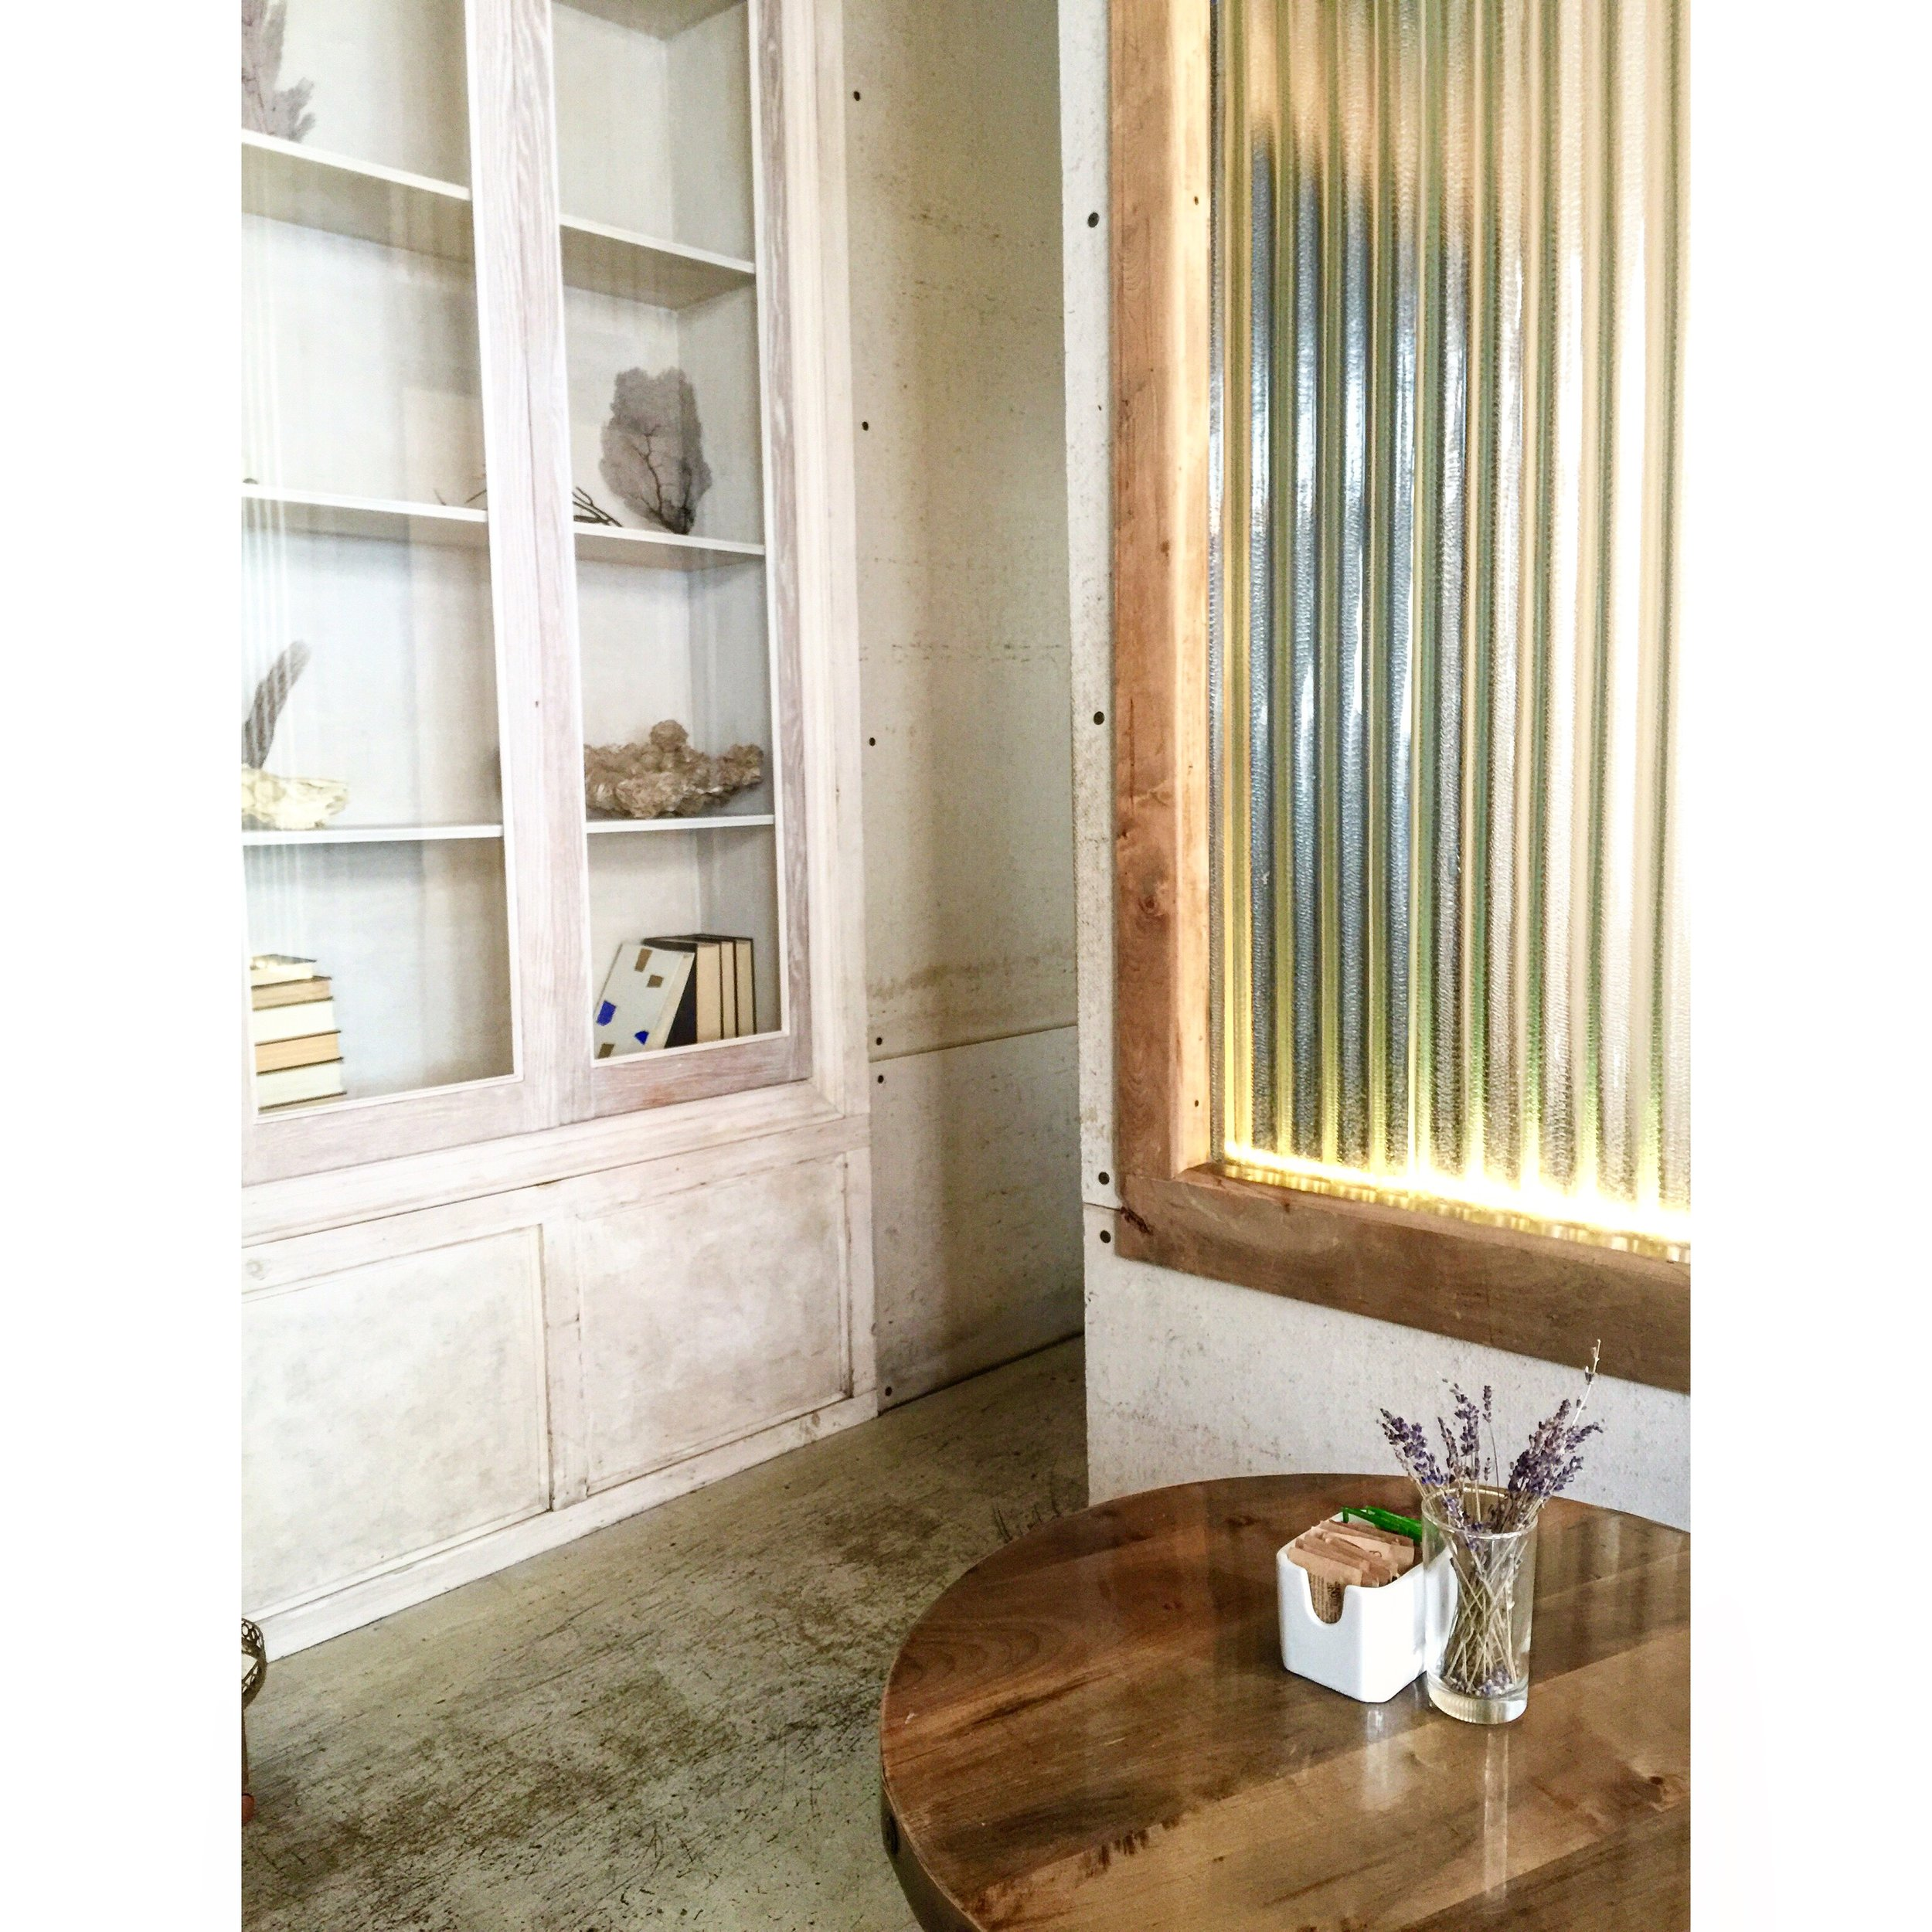 ROSE & IVY Journal A Taste of New York Two Pretty New Coffee Shops on Our Radar Sel Rrose Cafe